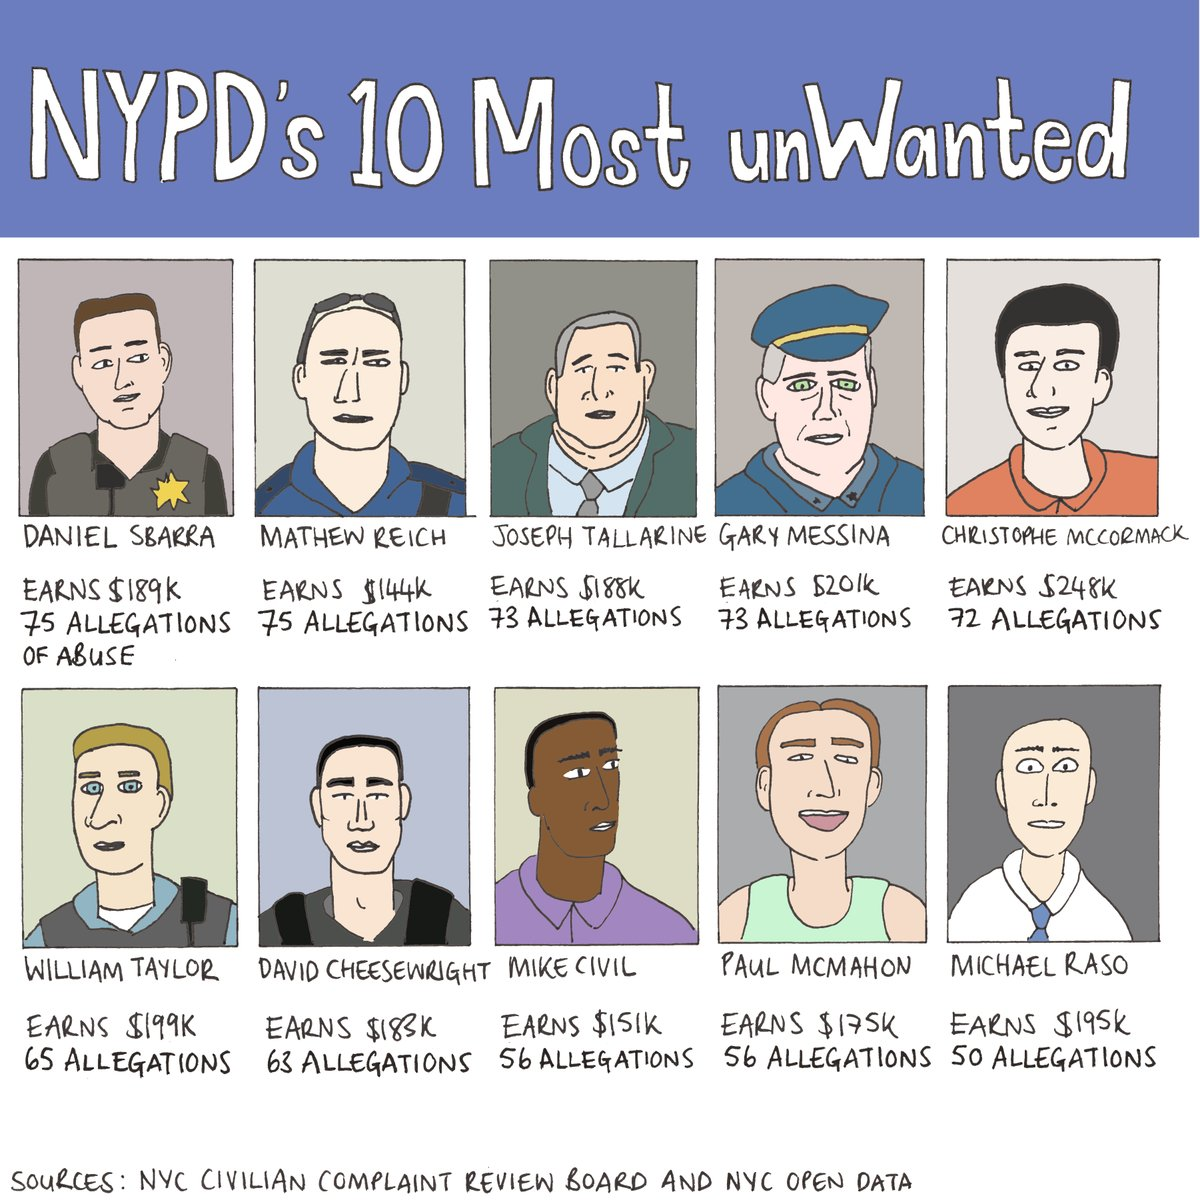 These are the NYPD officers with the most complaints against them   https://t.co/Vnm4YuQeeQ https://t.co/NZ0k6lfYeK